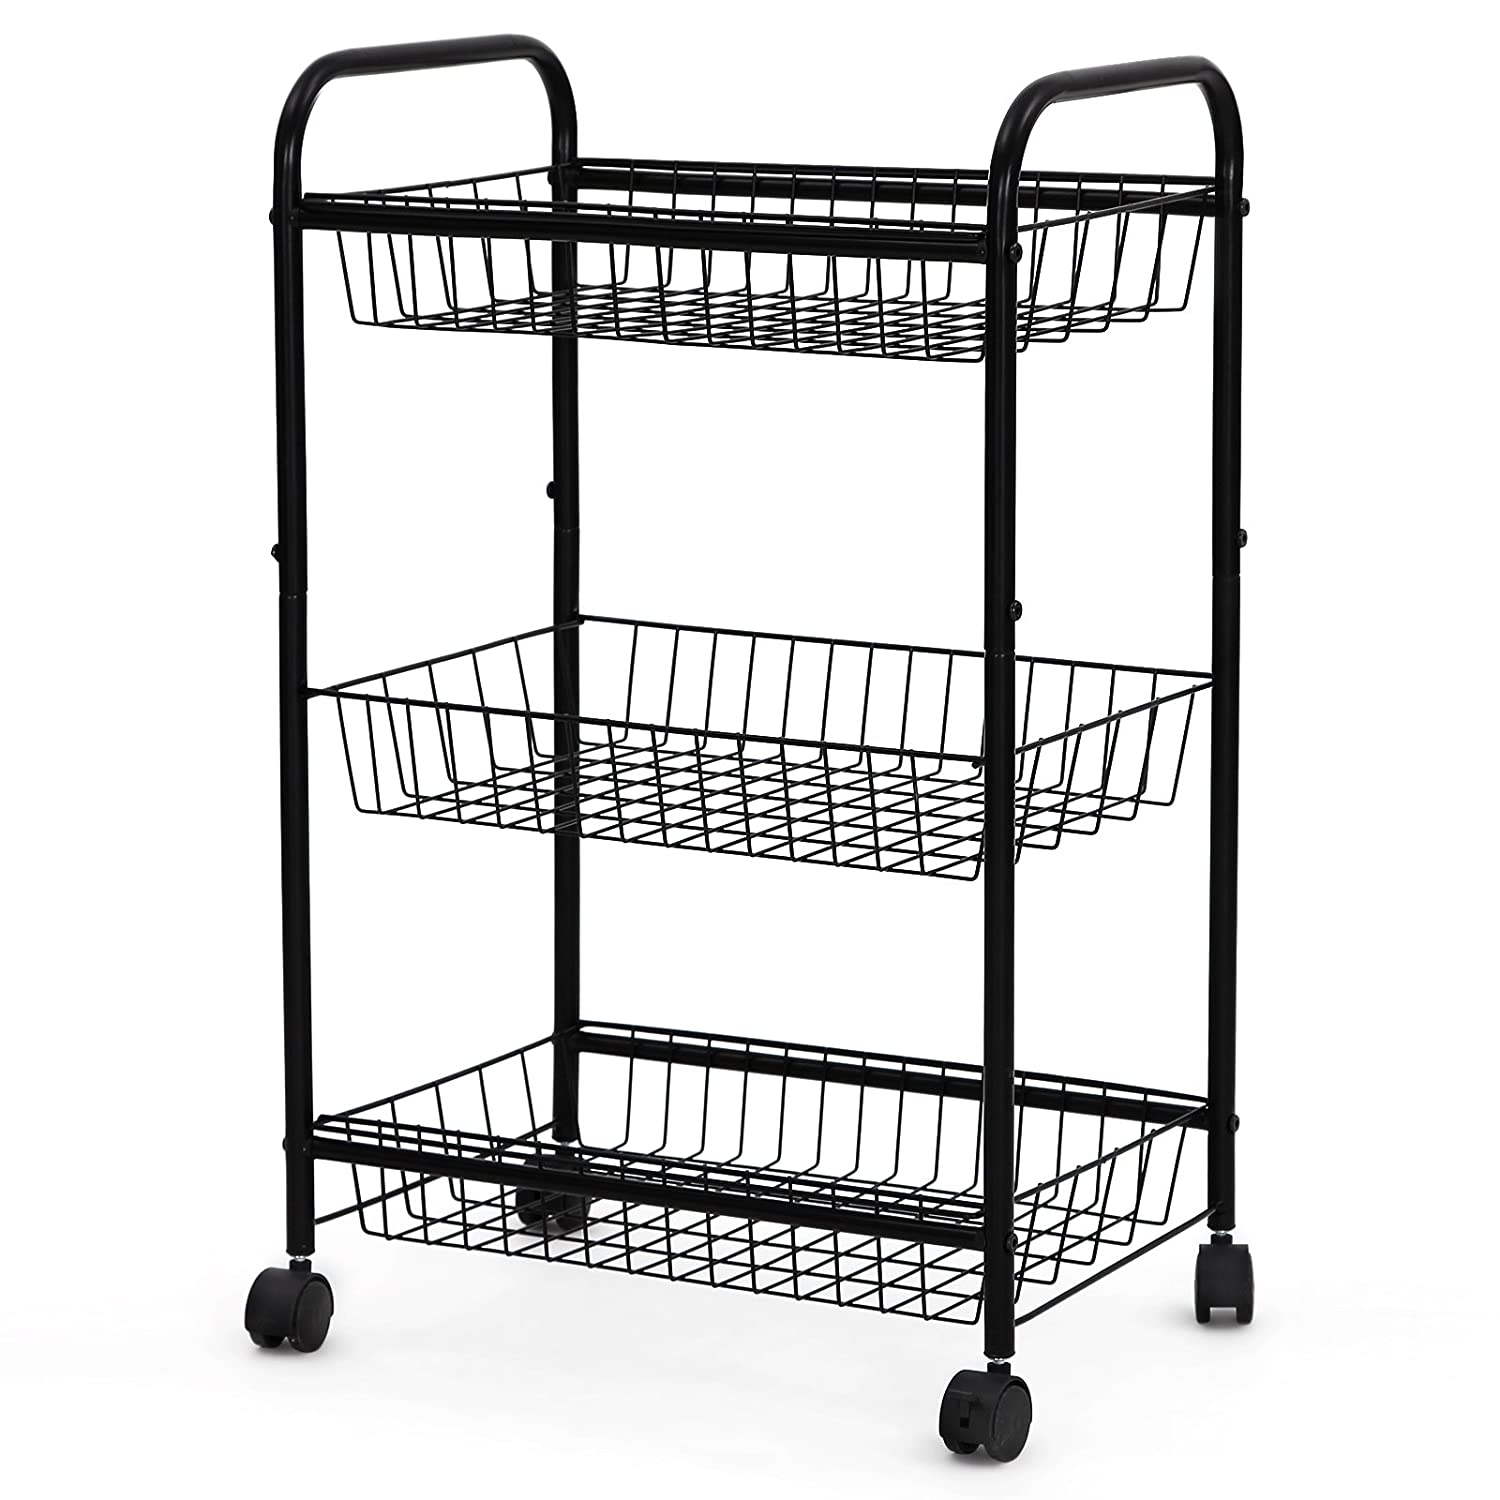 Songmics 3 Tiers Rolling Storage Cart with 2 Removable Baskets Kitchen Pantry Laundry Organizer Bathroom Utility Cart on Wheels Black UBSC03H